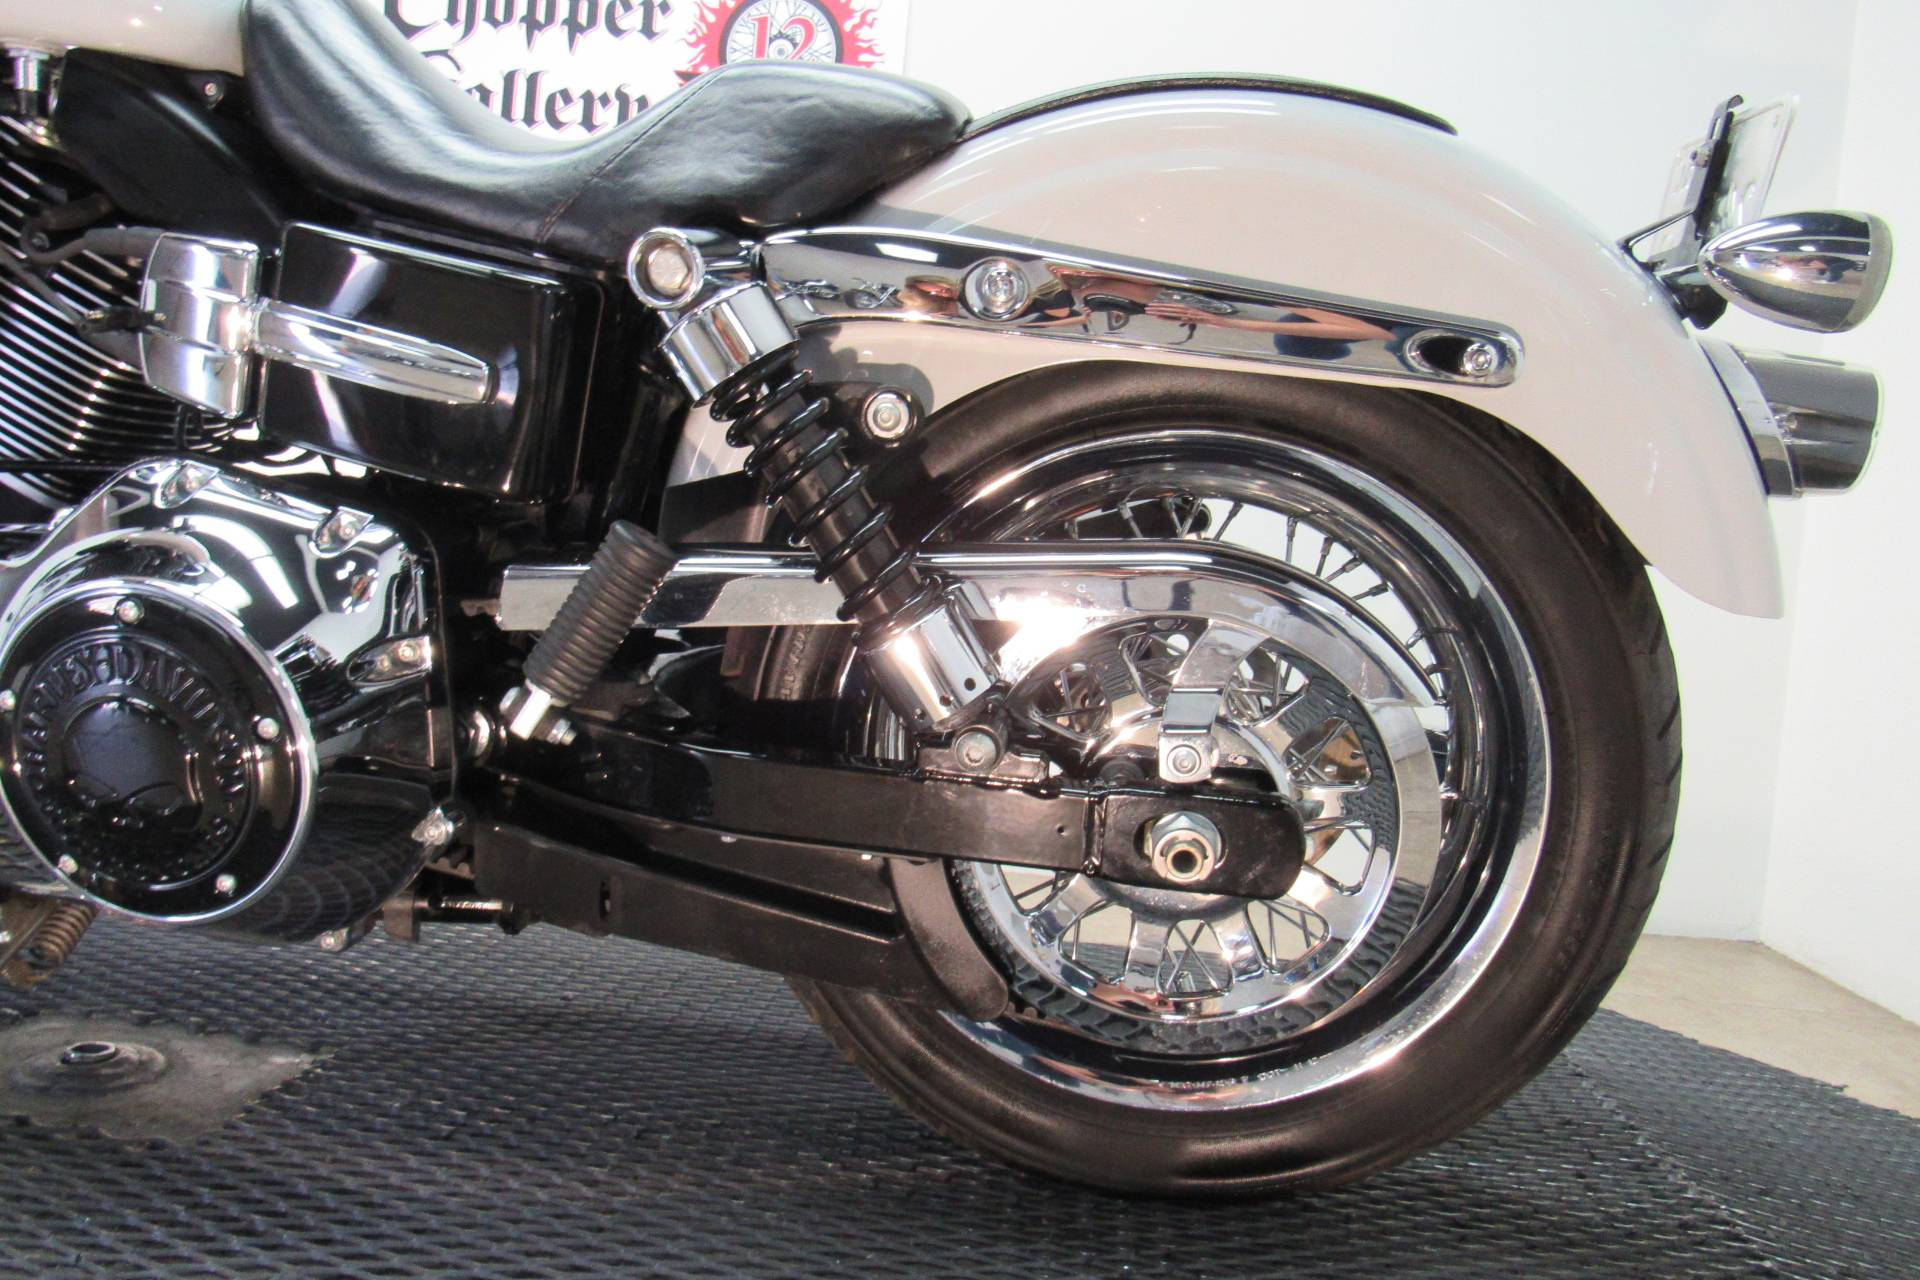 2014 Harley-Davidson Dyna® Super Glide® Custom in Temecula, California - Photo 26